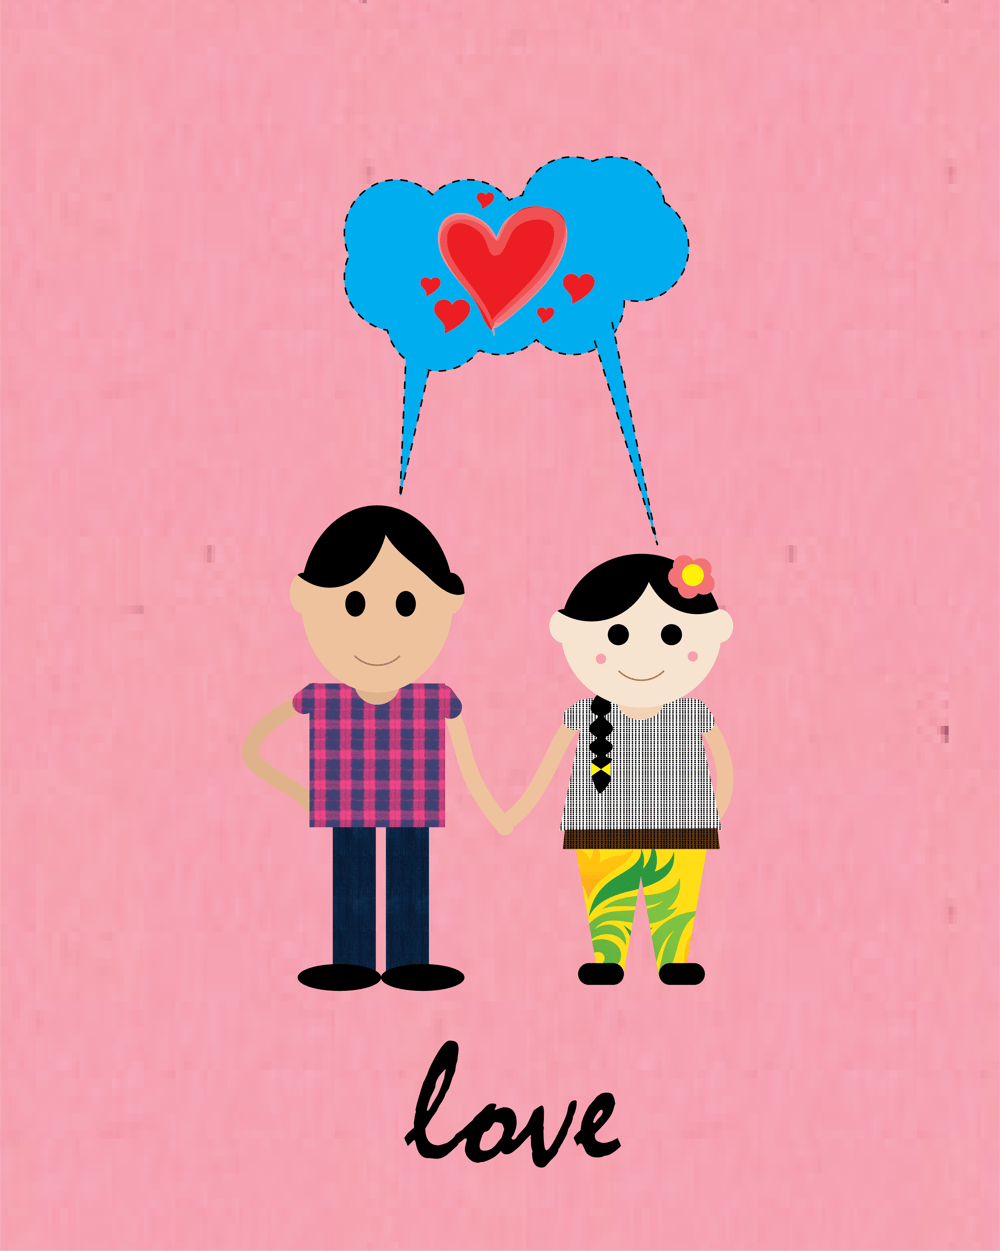 Love - image 1 - student project